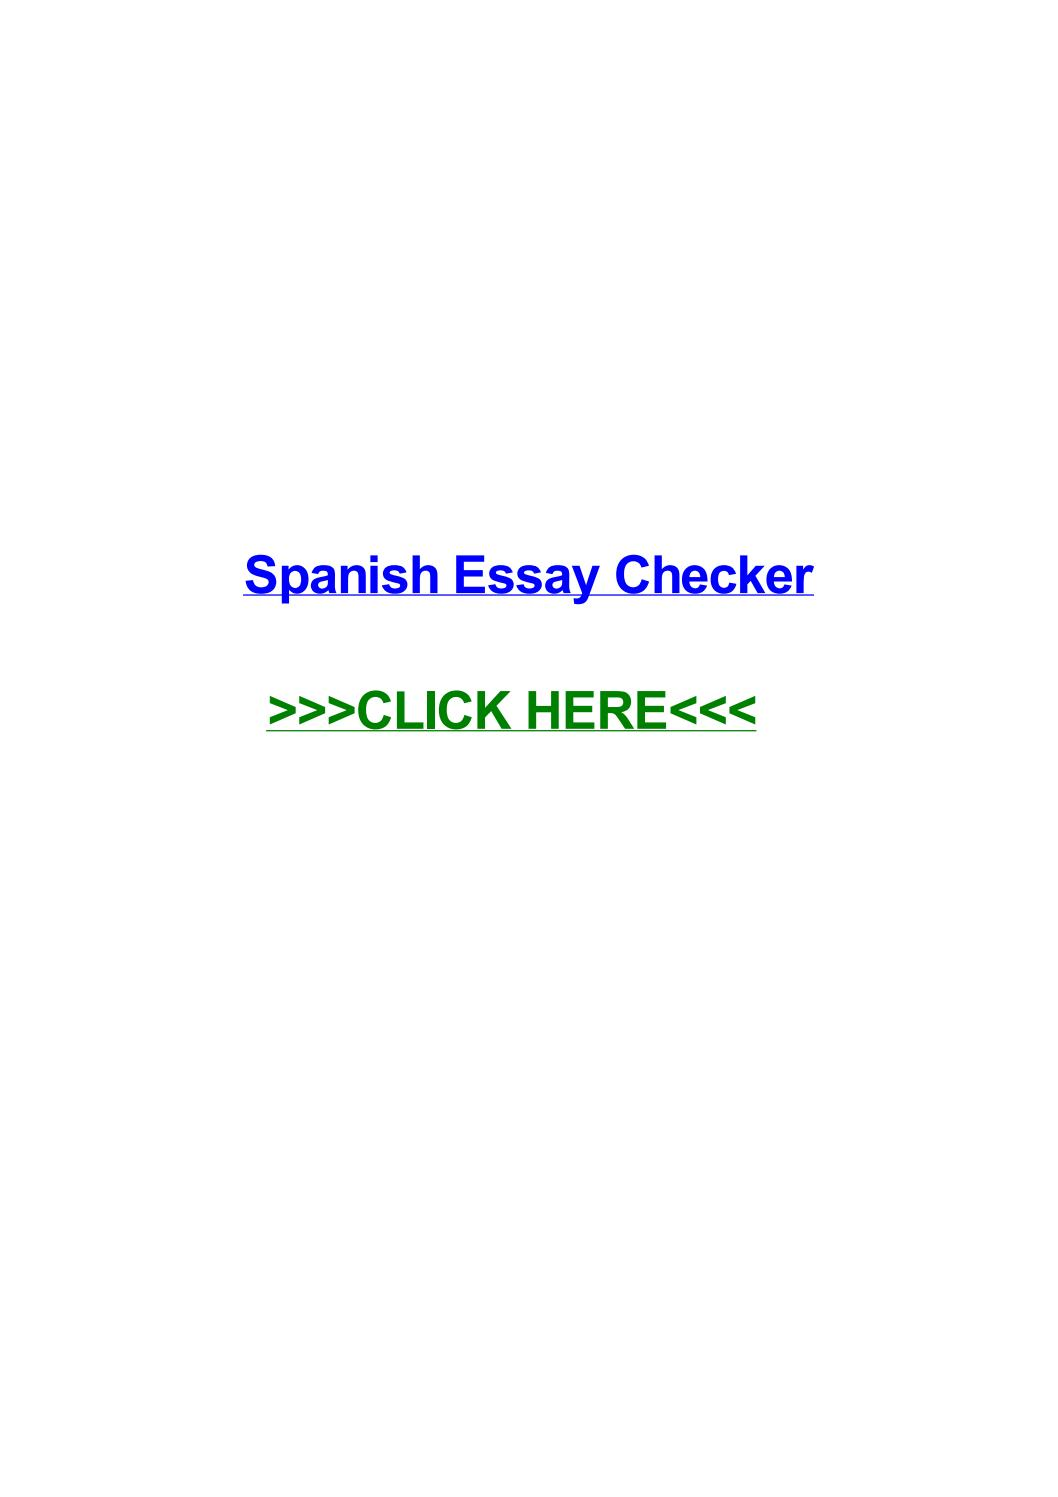 003 Essay Example Page 1 Spanish Remarkable Checker Full